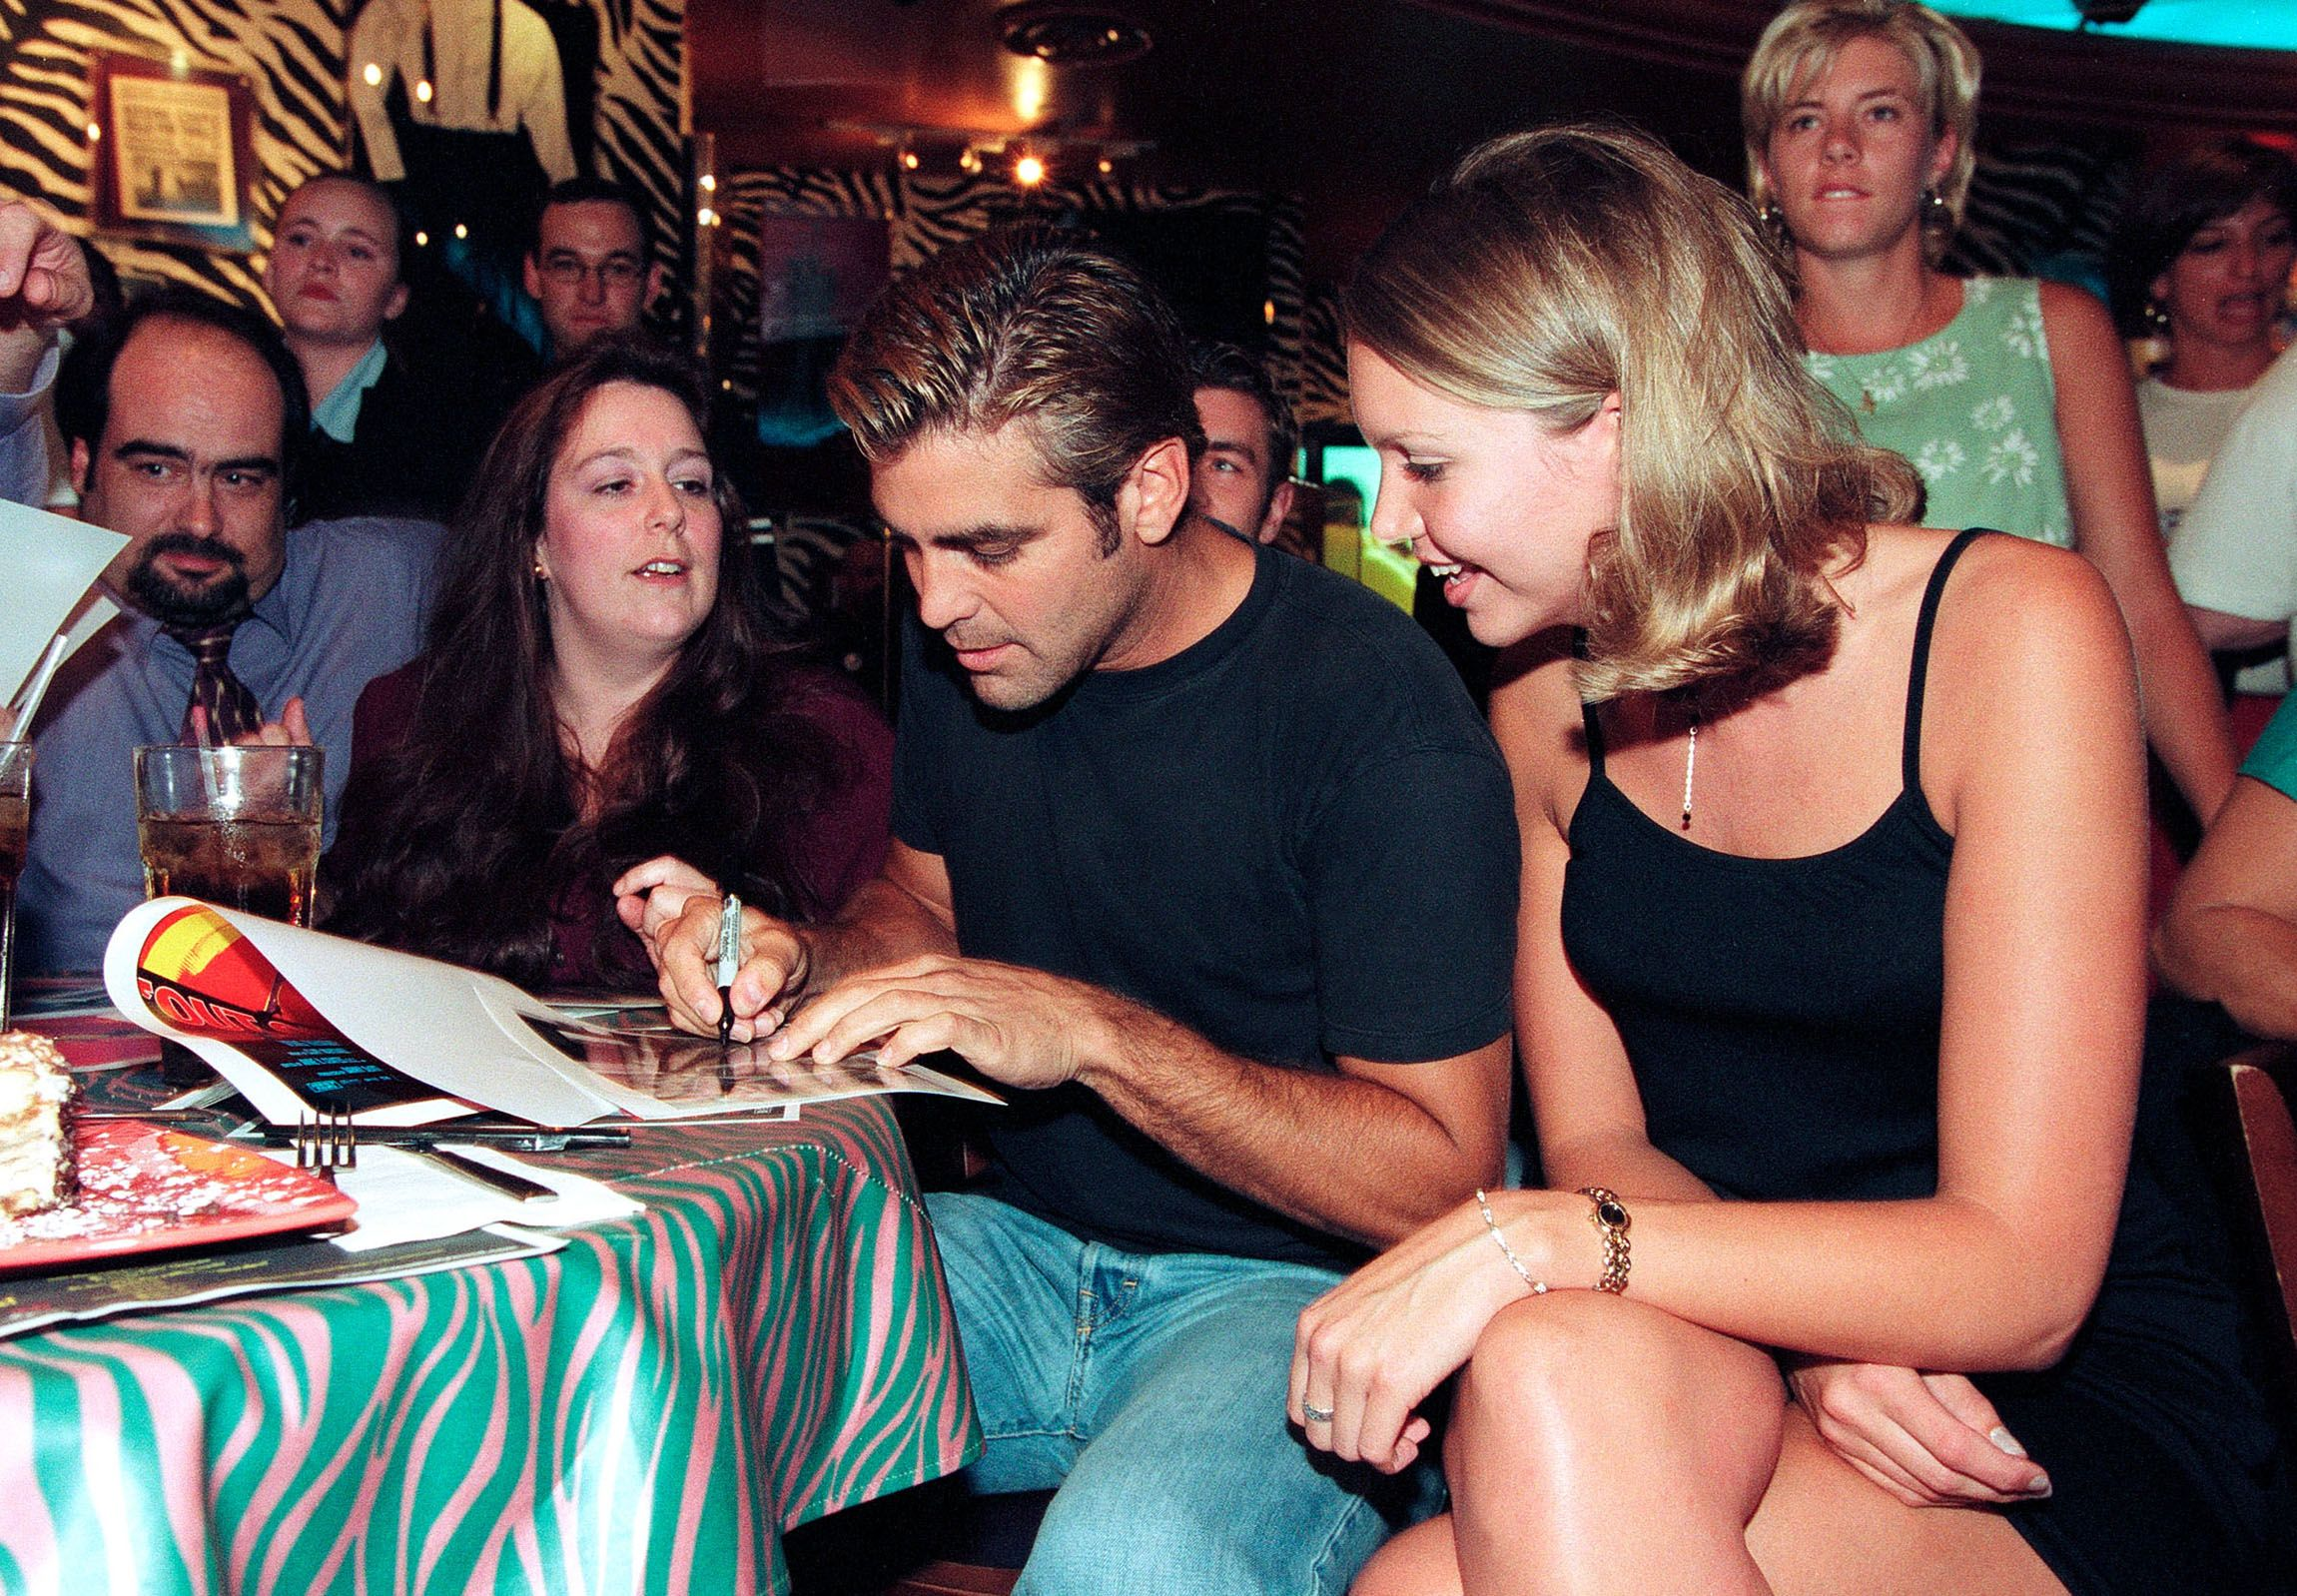 Clooney visits with fans at Planet Hollywood in 1995 in Atlanta, Georgia.